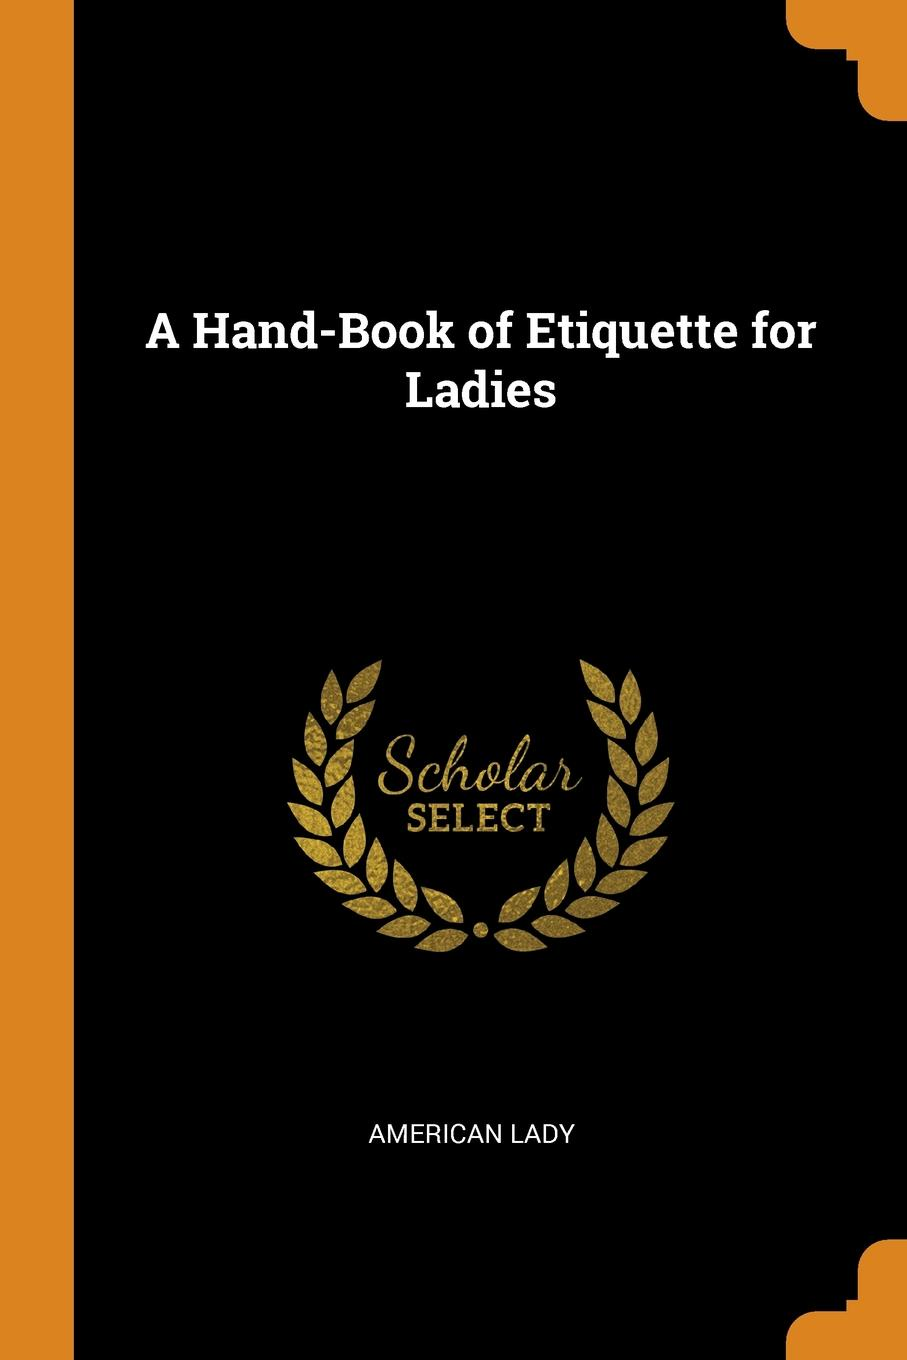 American Lady A Hand-Book of Etiquette for Ladies